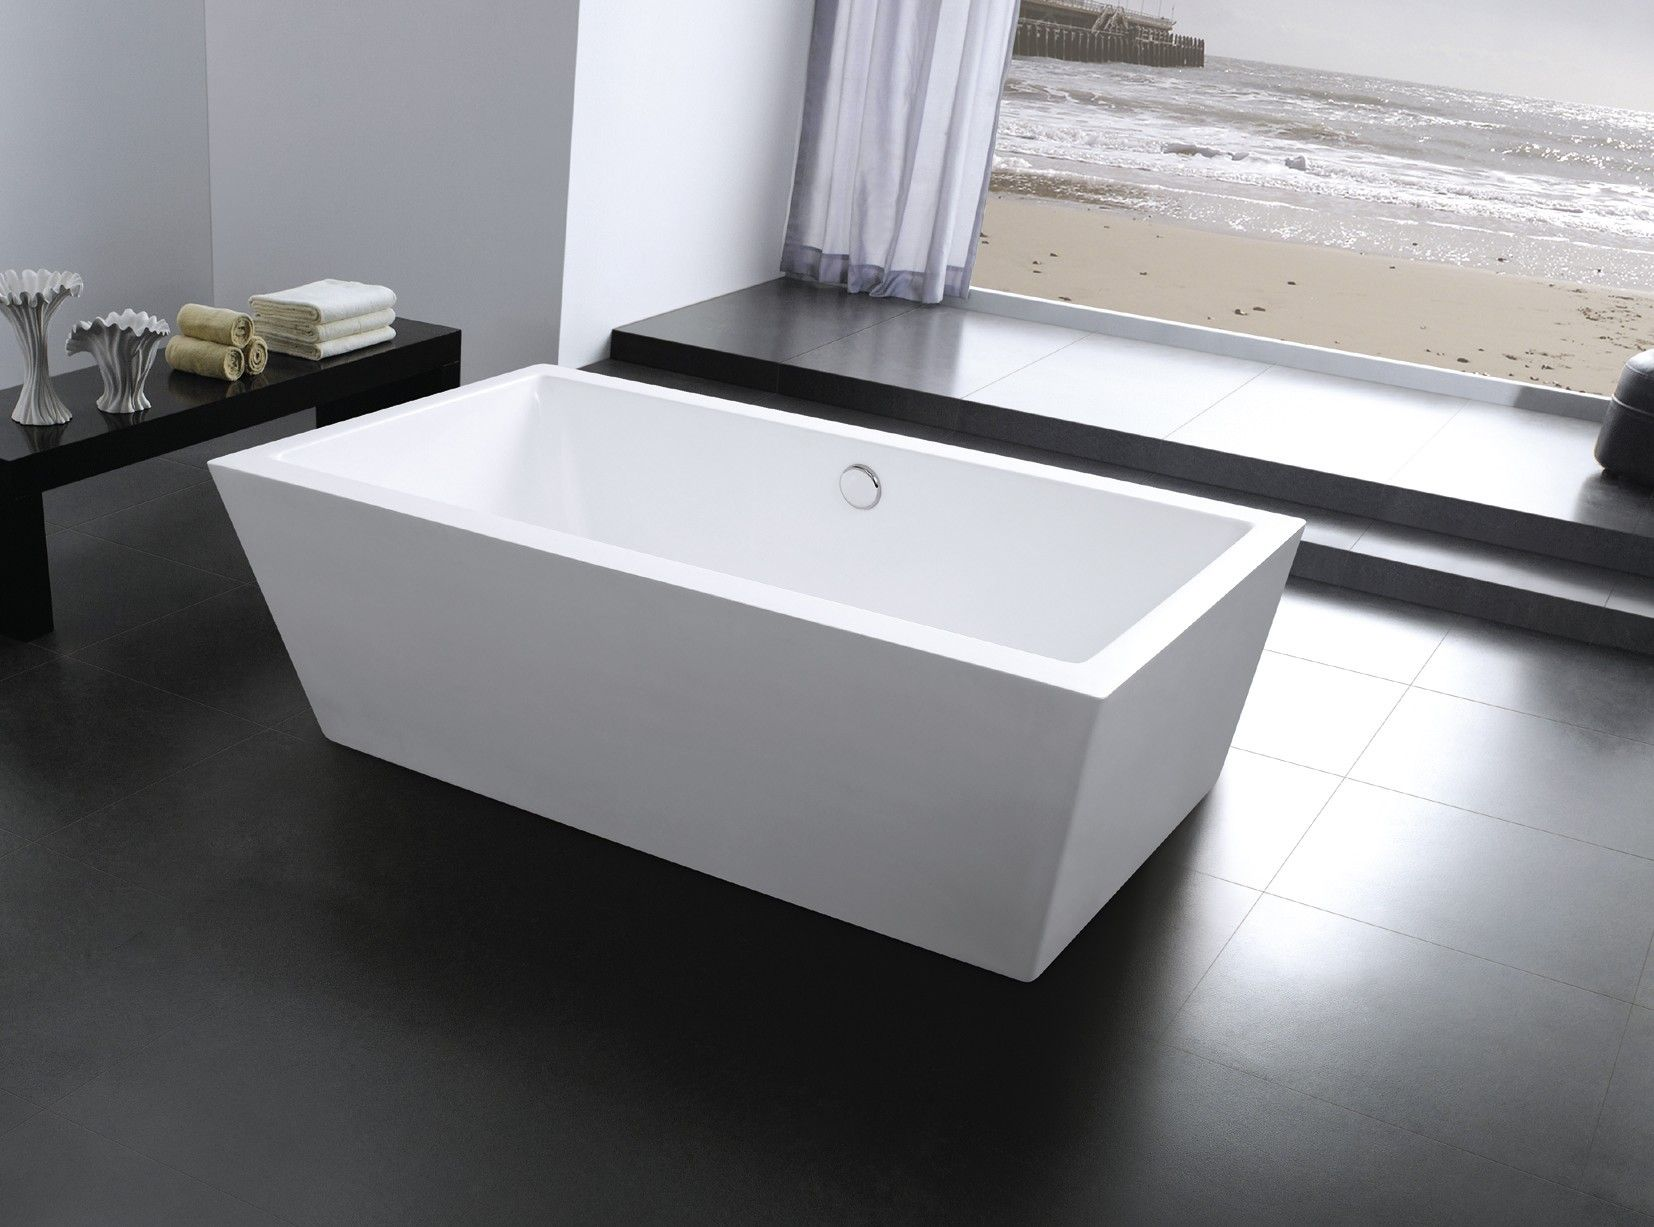 Charming AQUA DECOR Paris 60 Inch Modern Free Standing Bathtub   White   Side View In